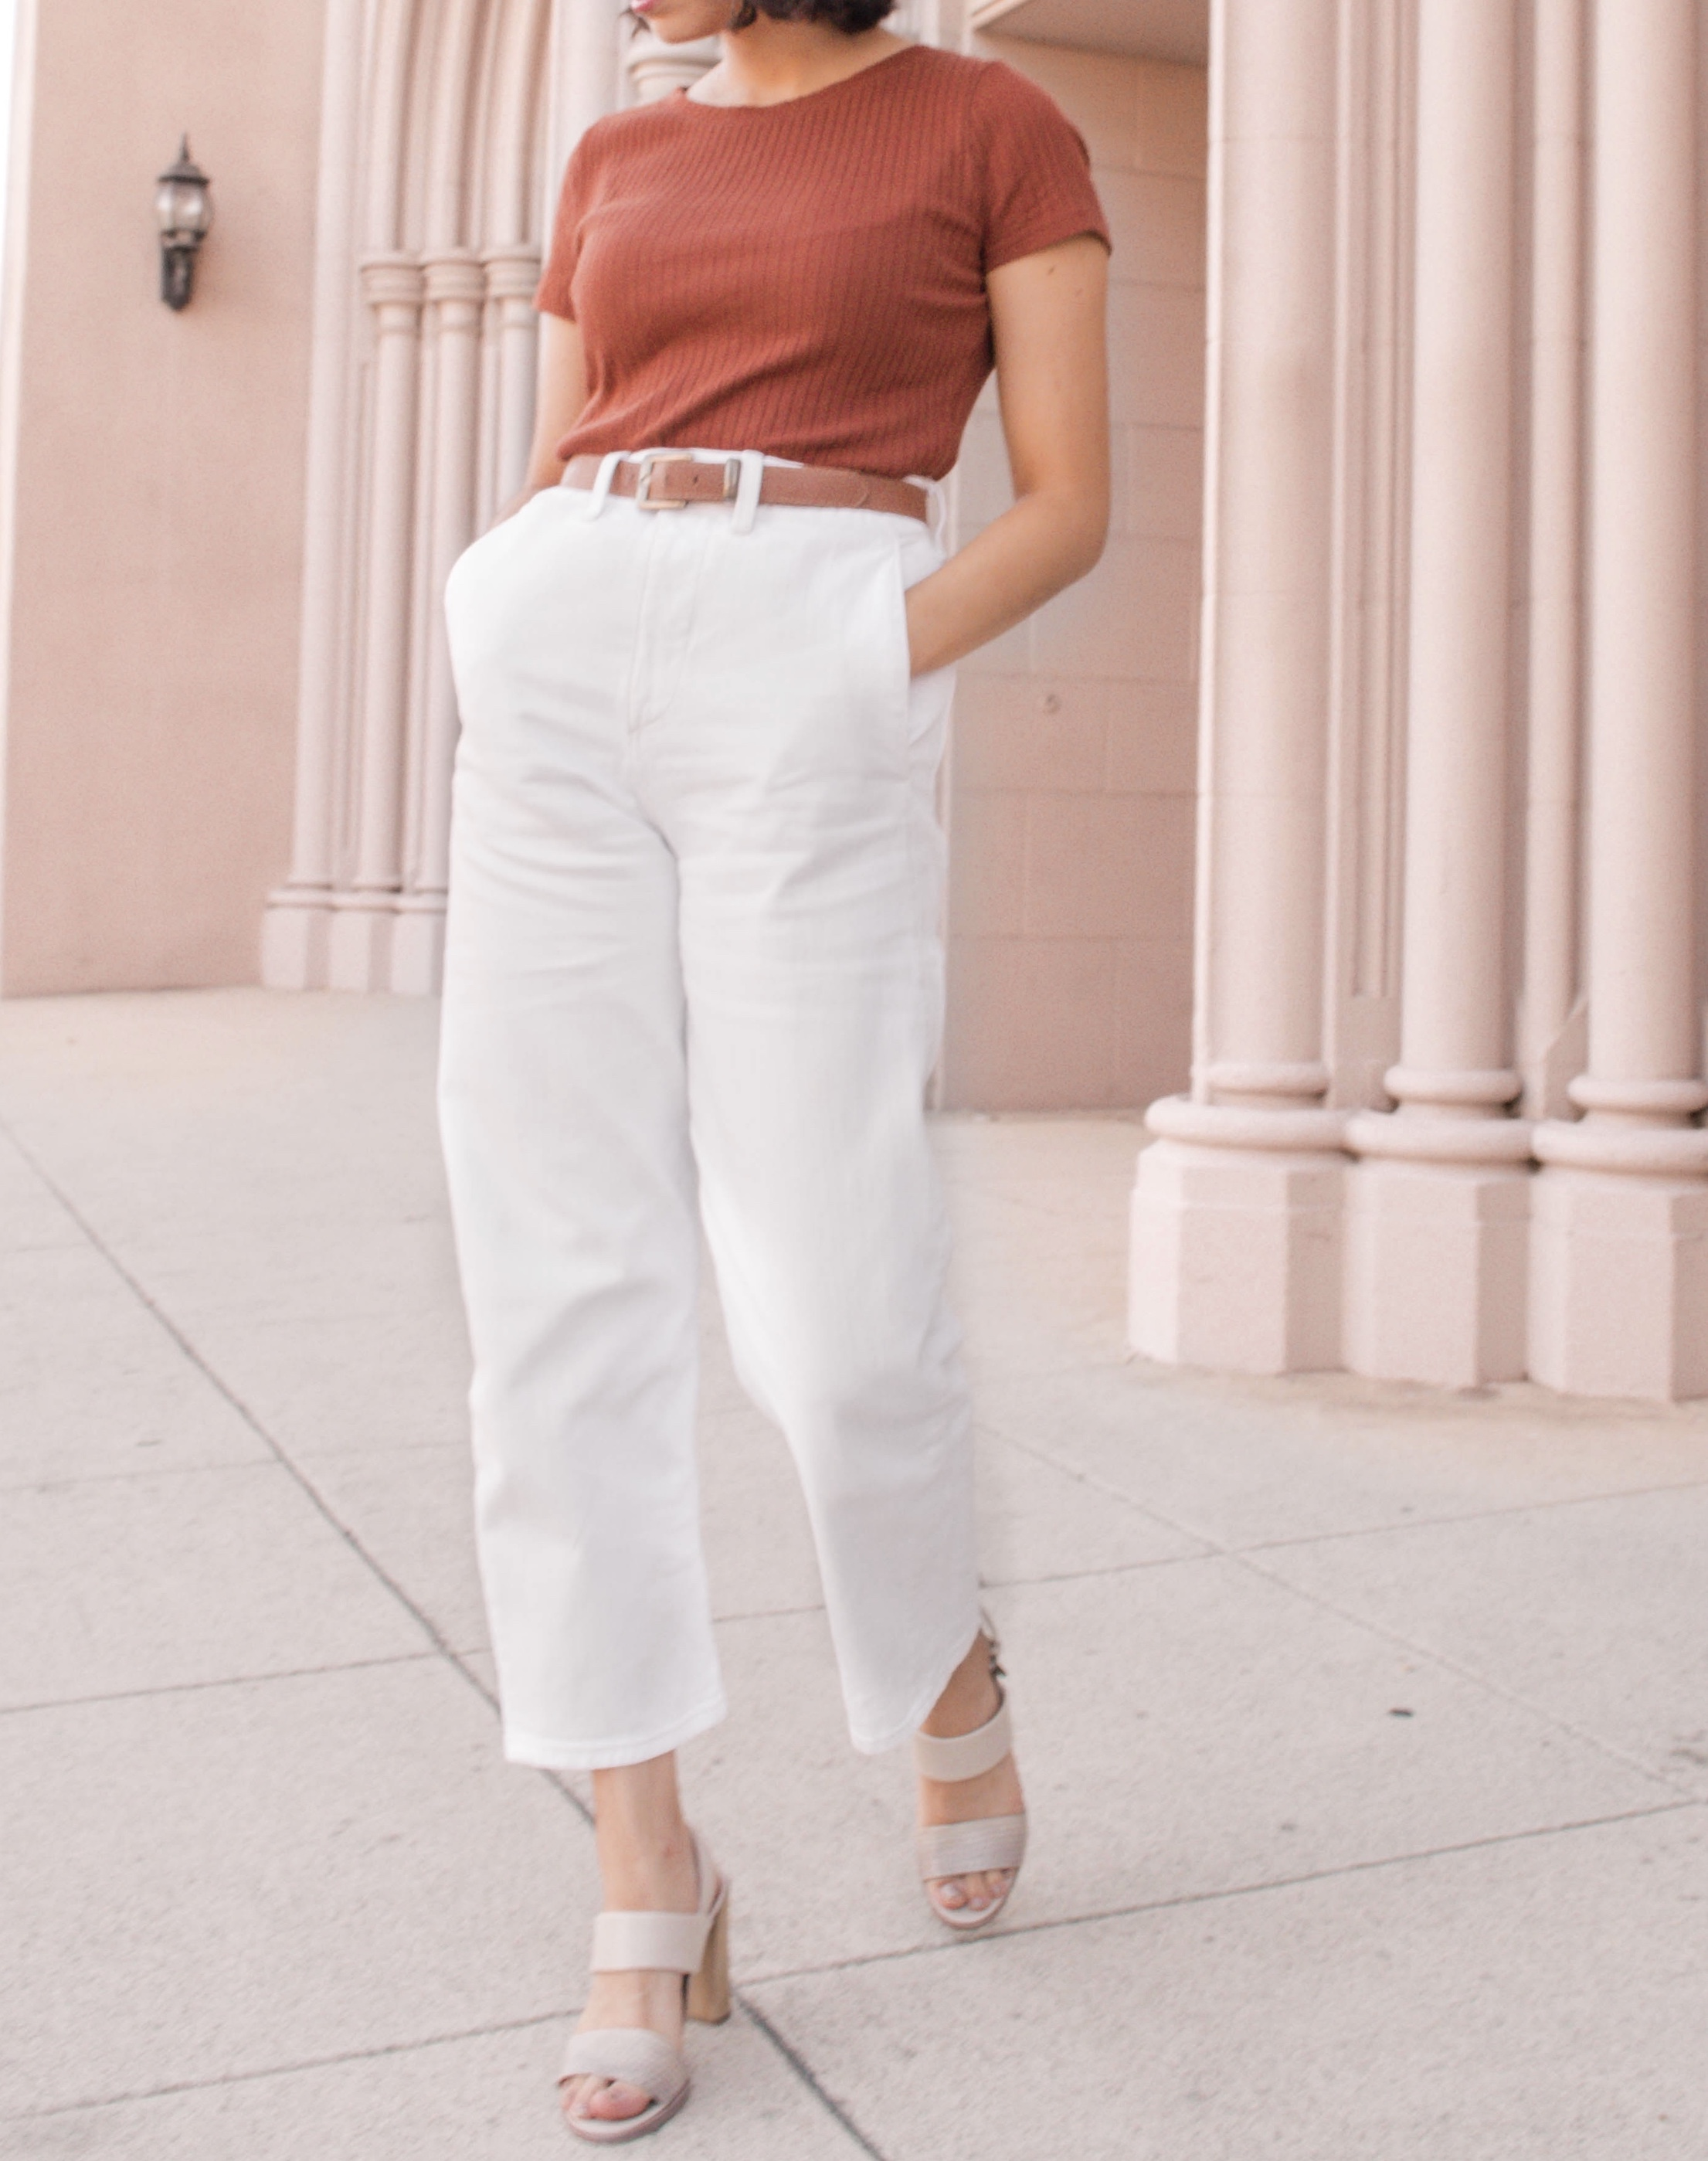 High waisted white pants outfit // A Week Of Self-Expressive Outfits With Aja Duran From Aja With Love on The Good Trade